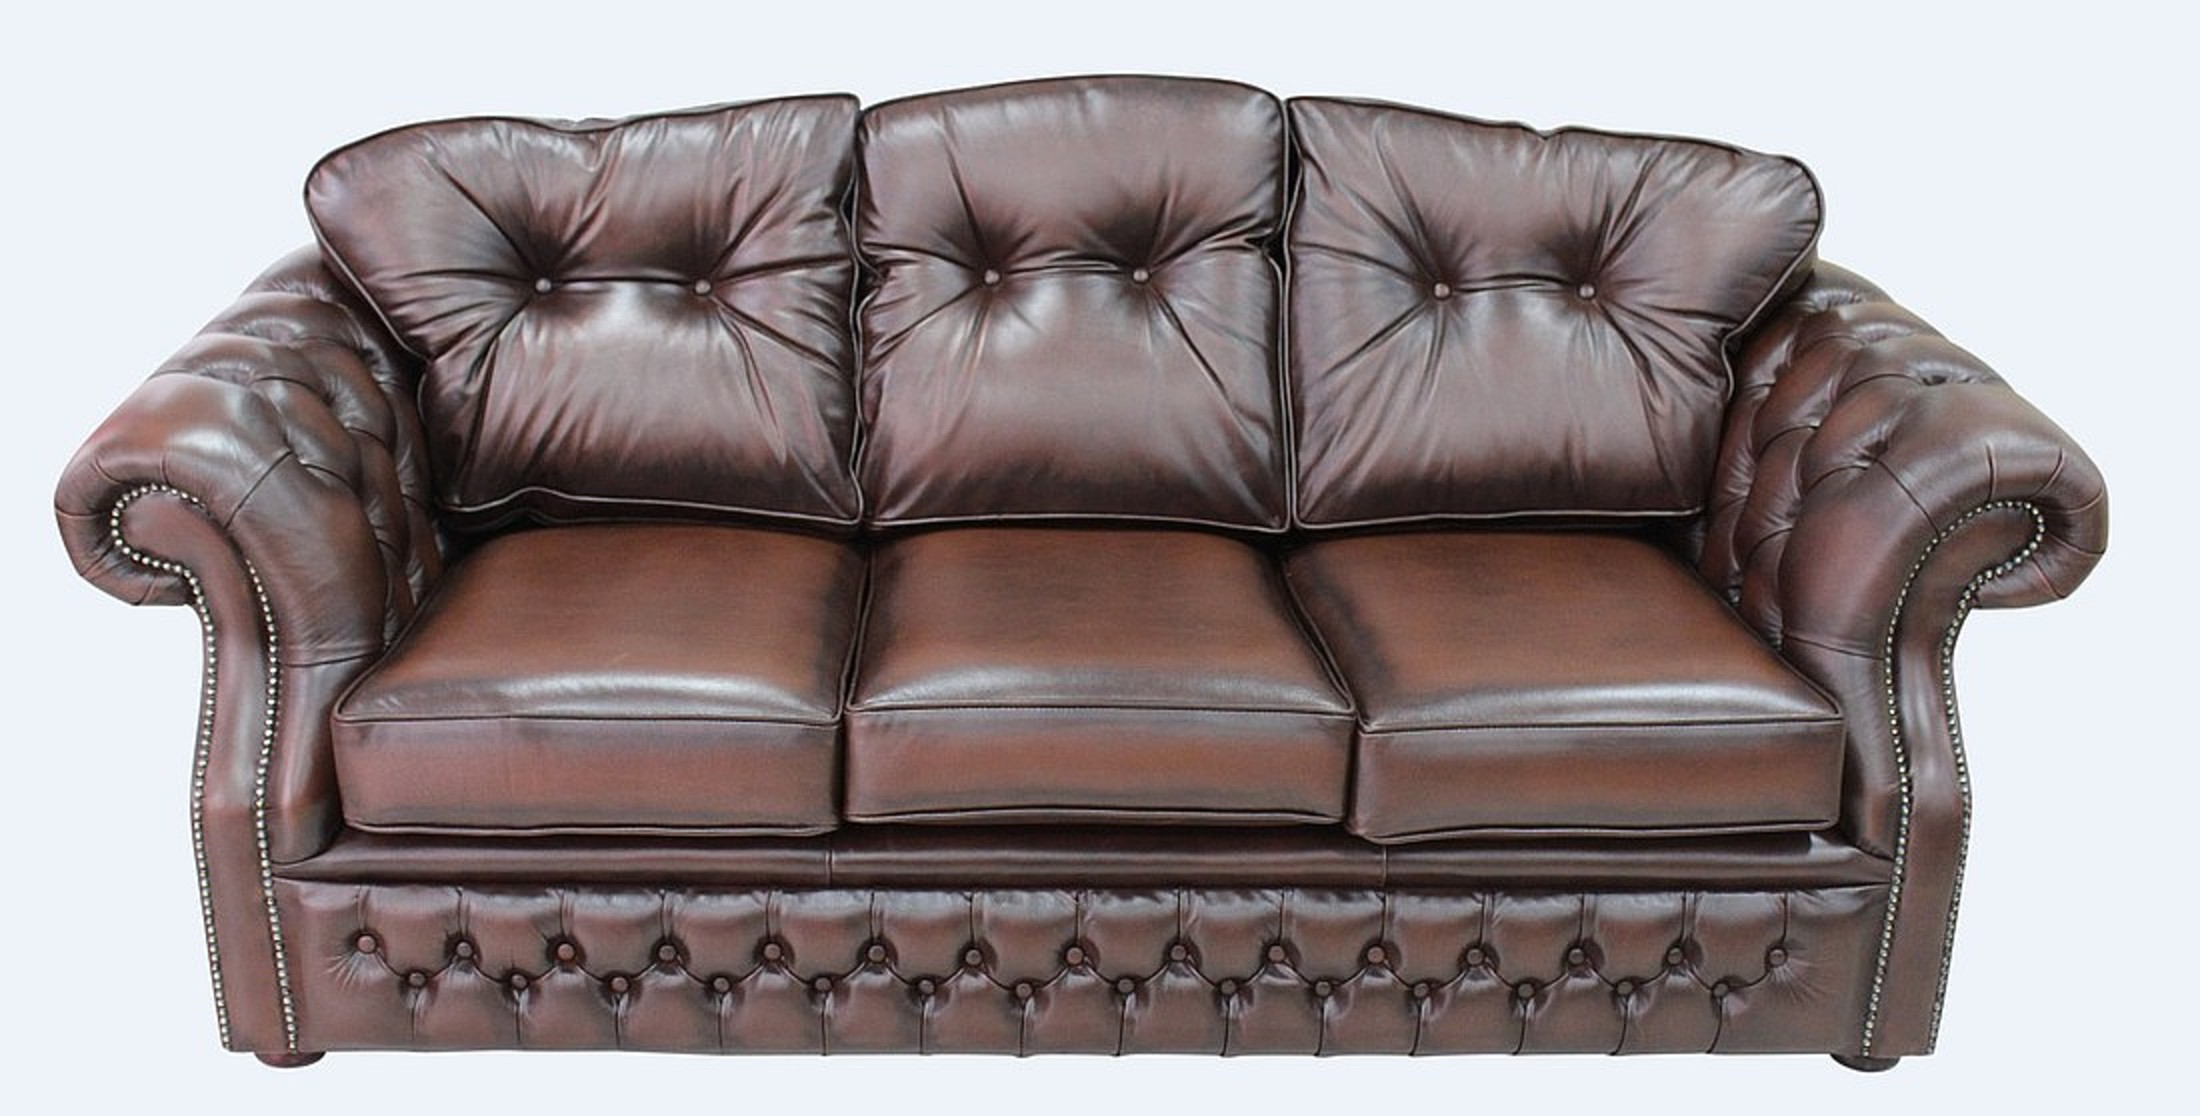 Chesterfield Era 3 Seater Settee Traditional Chesterfield Sofa Antique  Brown Leather